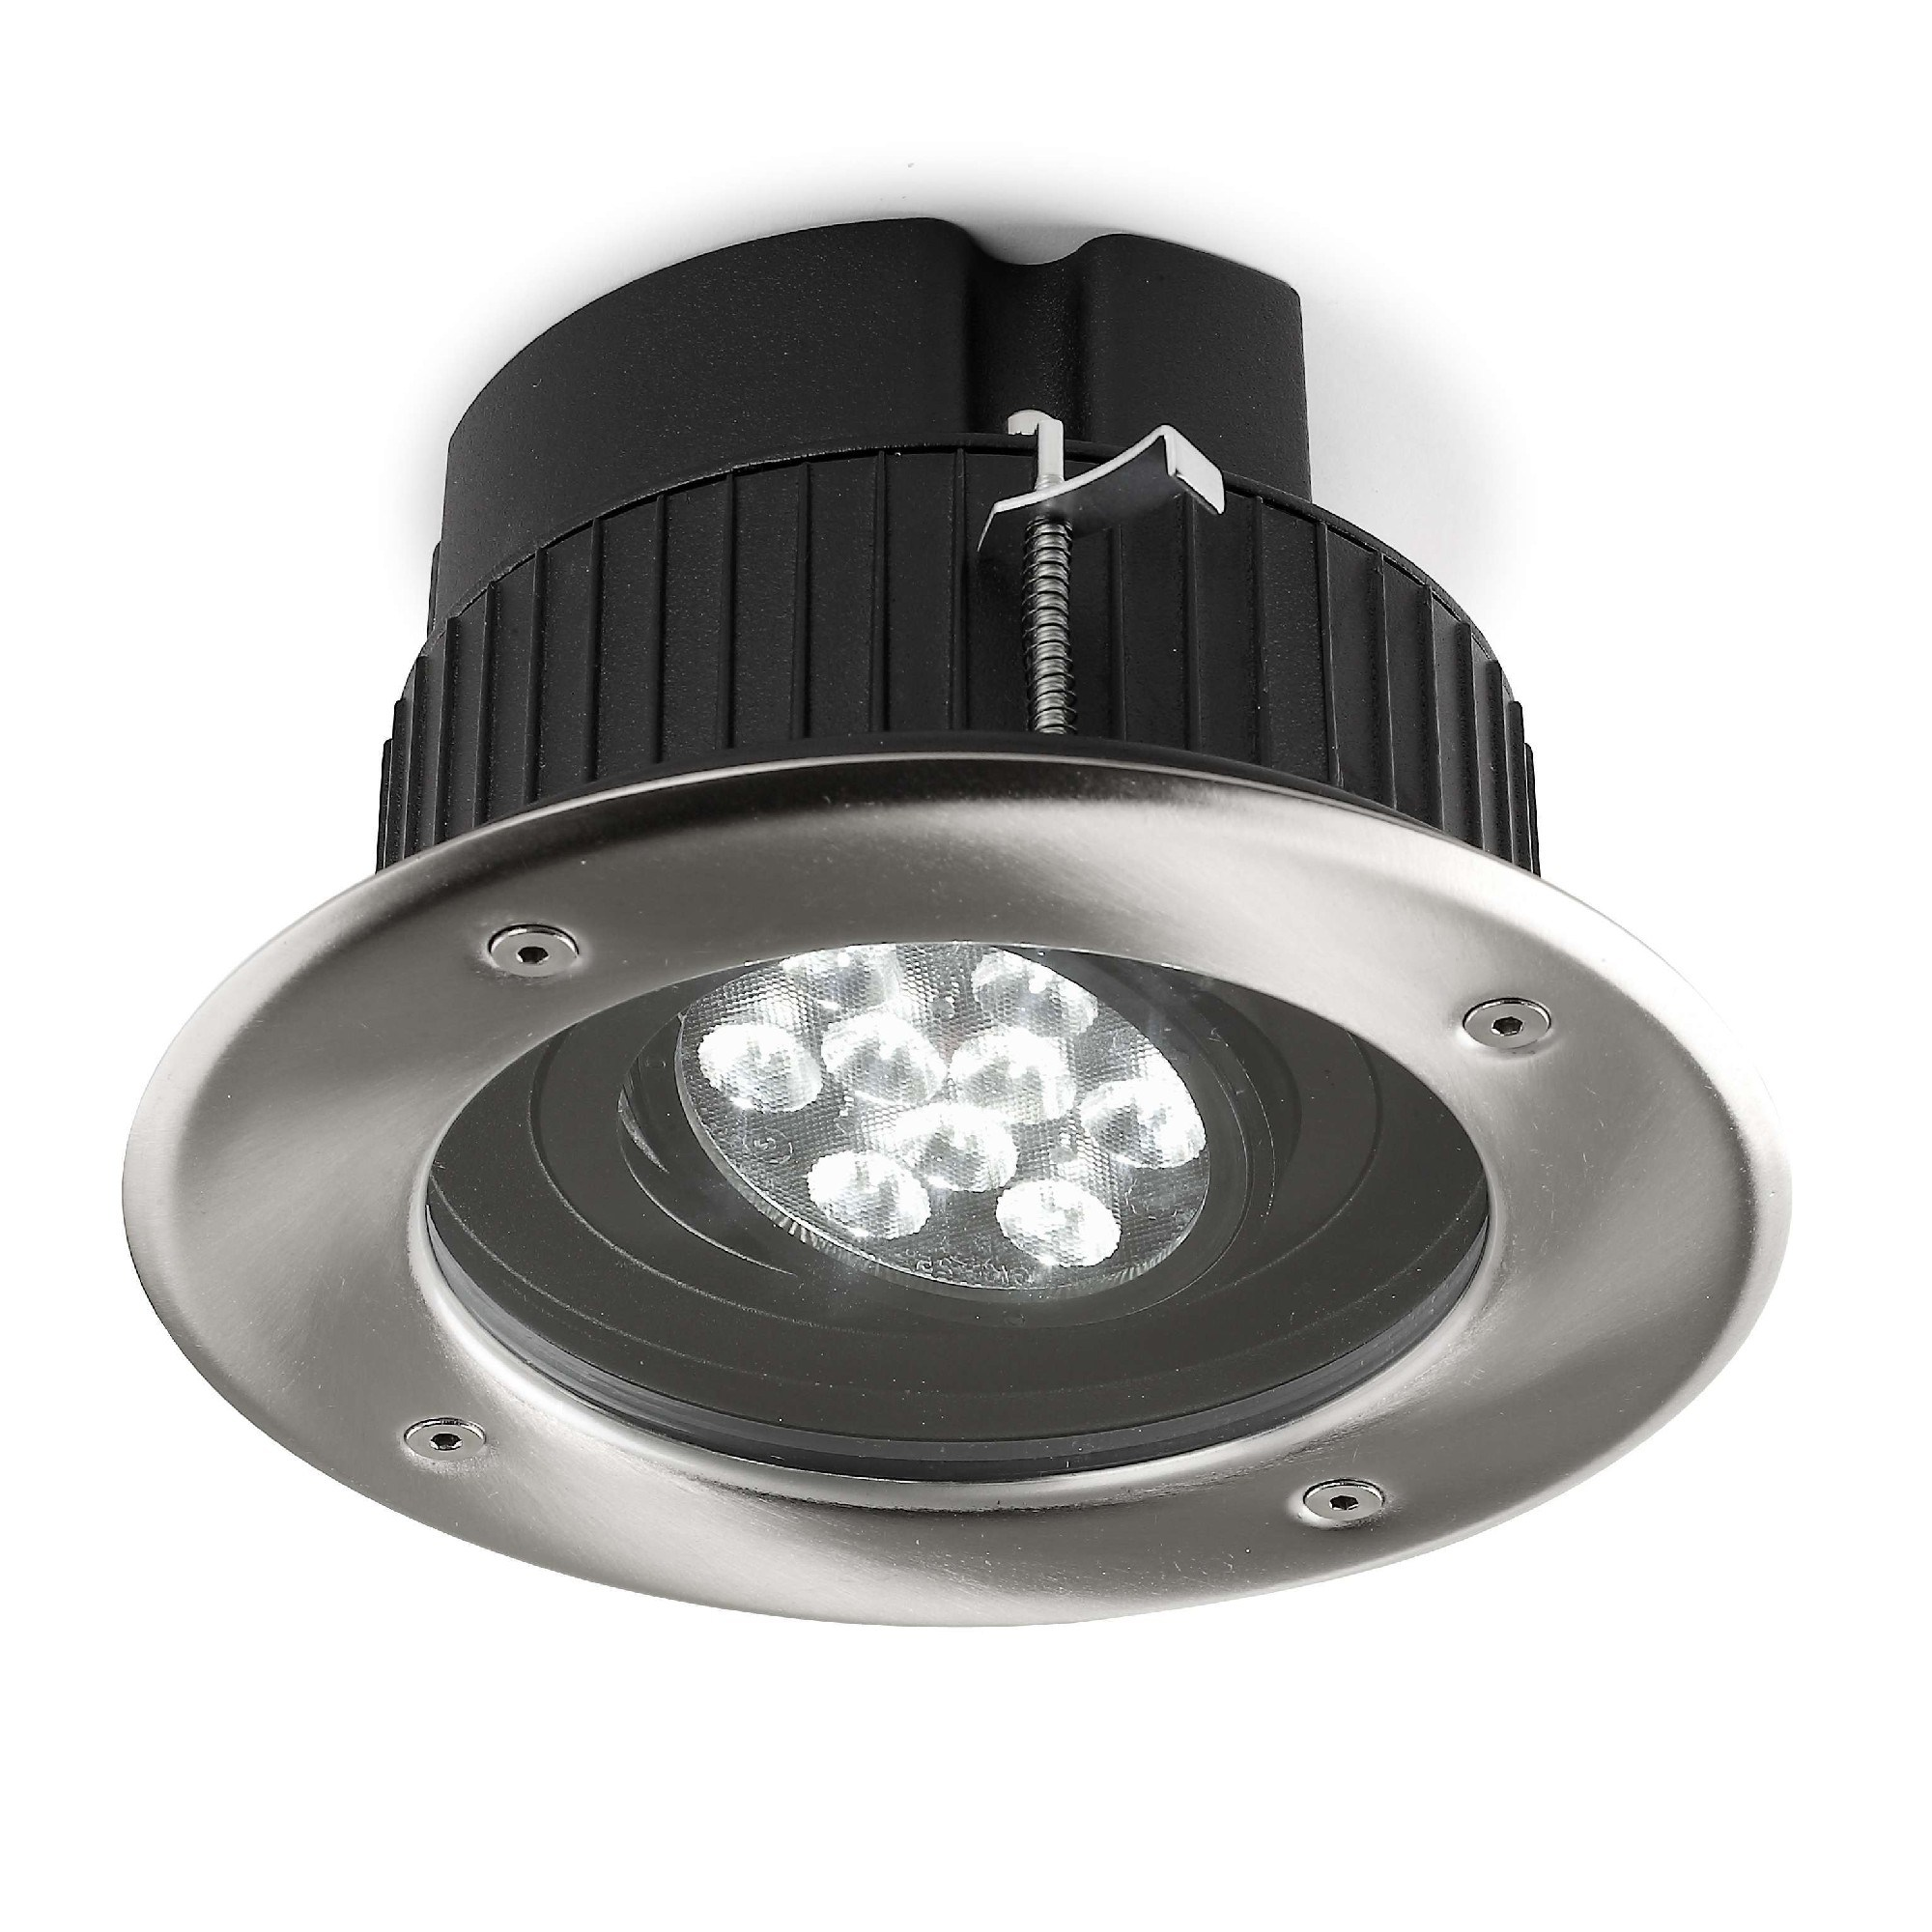 Leds C4 OUTDOOR 15 9948 CA CL LED lampen